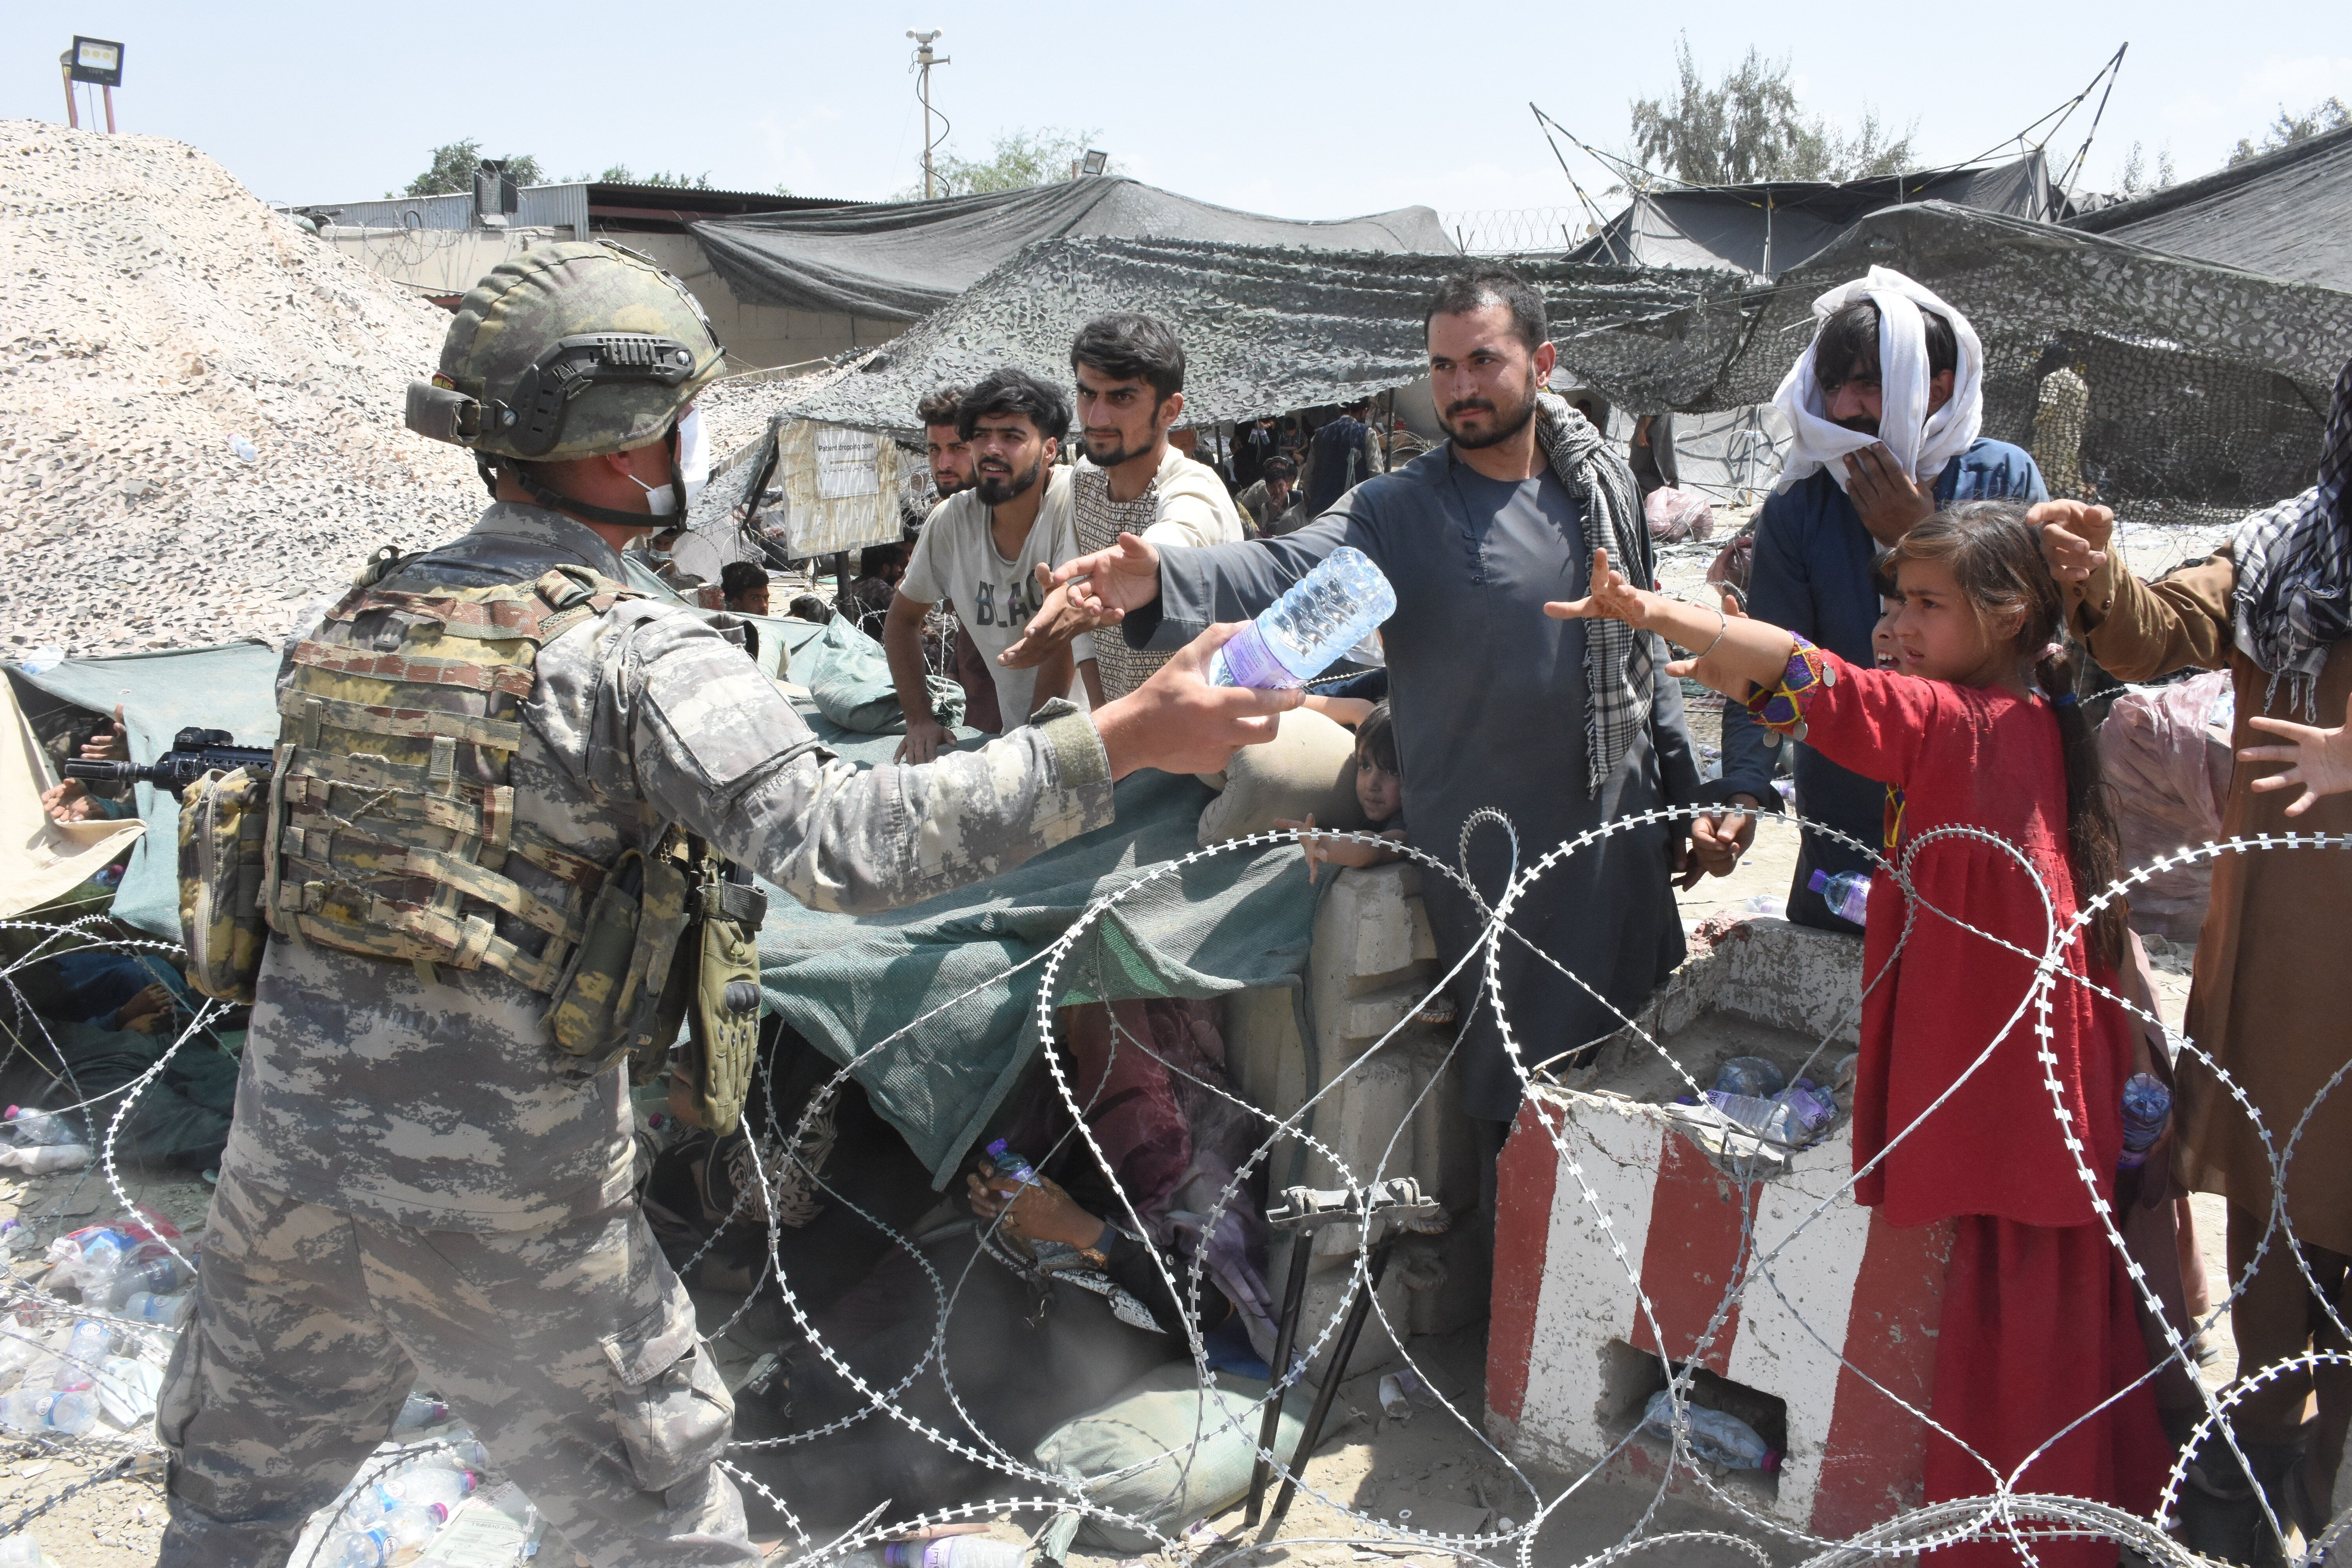 Soldiers of the Turkish Task Force in Afghanistan are on duty in and around Hamid Karzai International Airport to help people